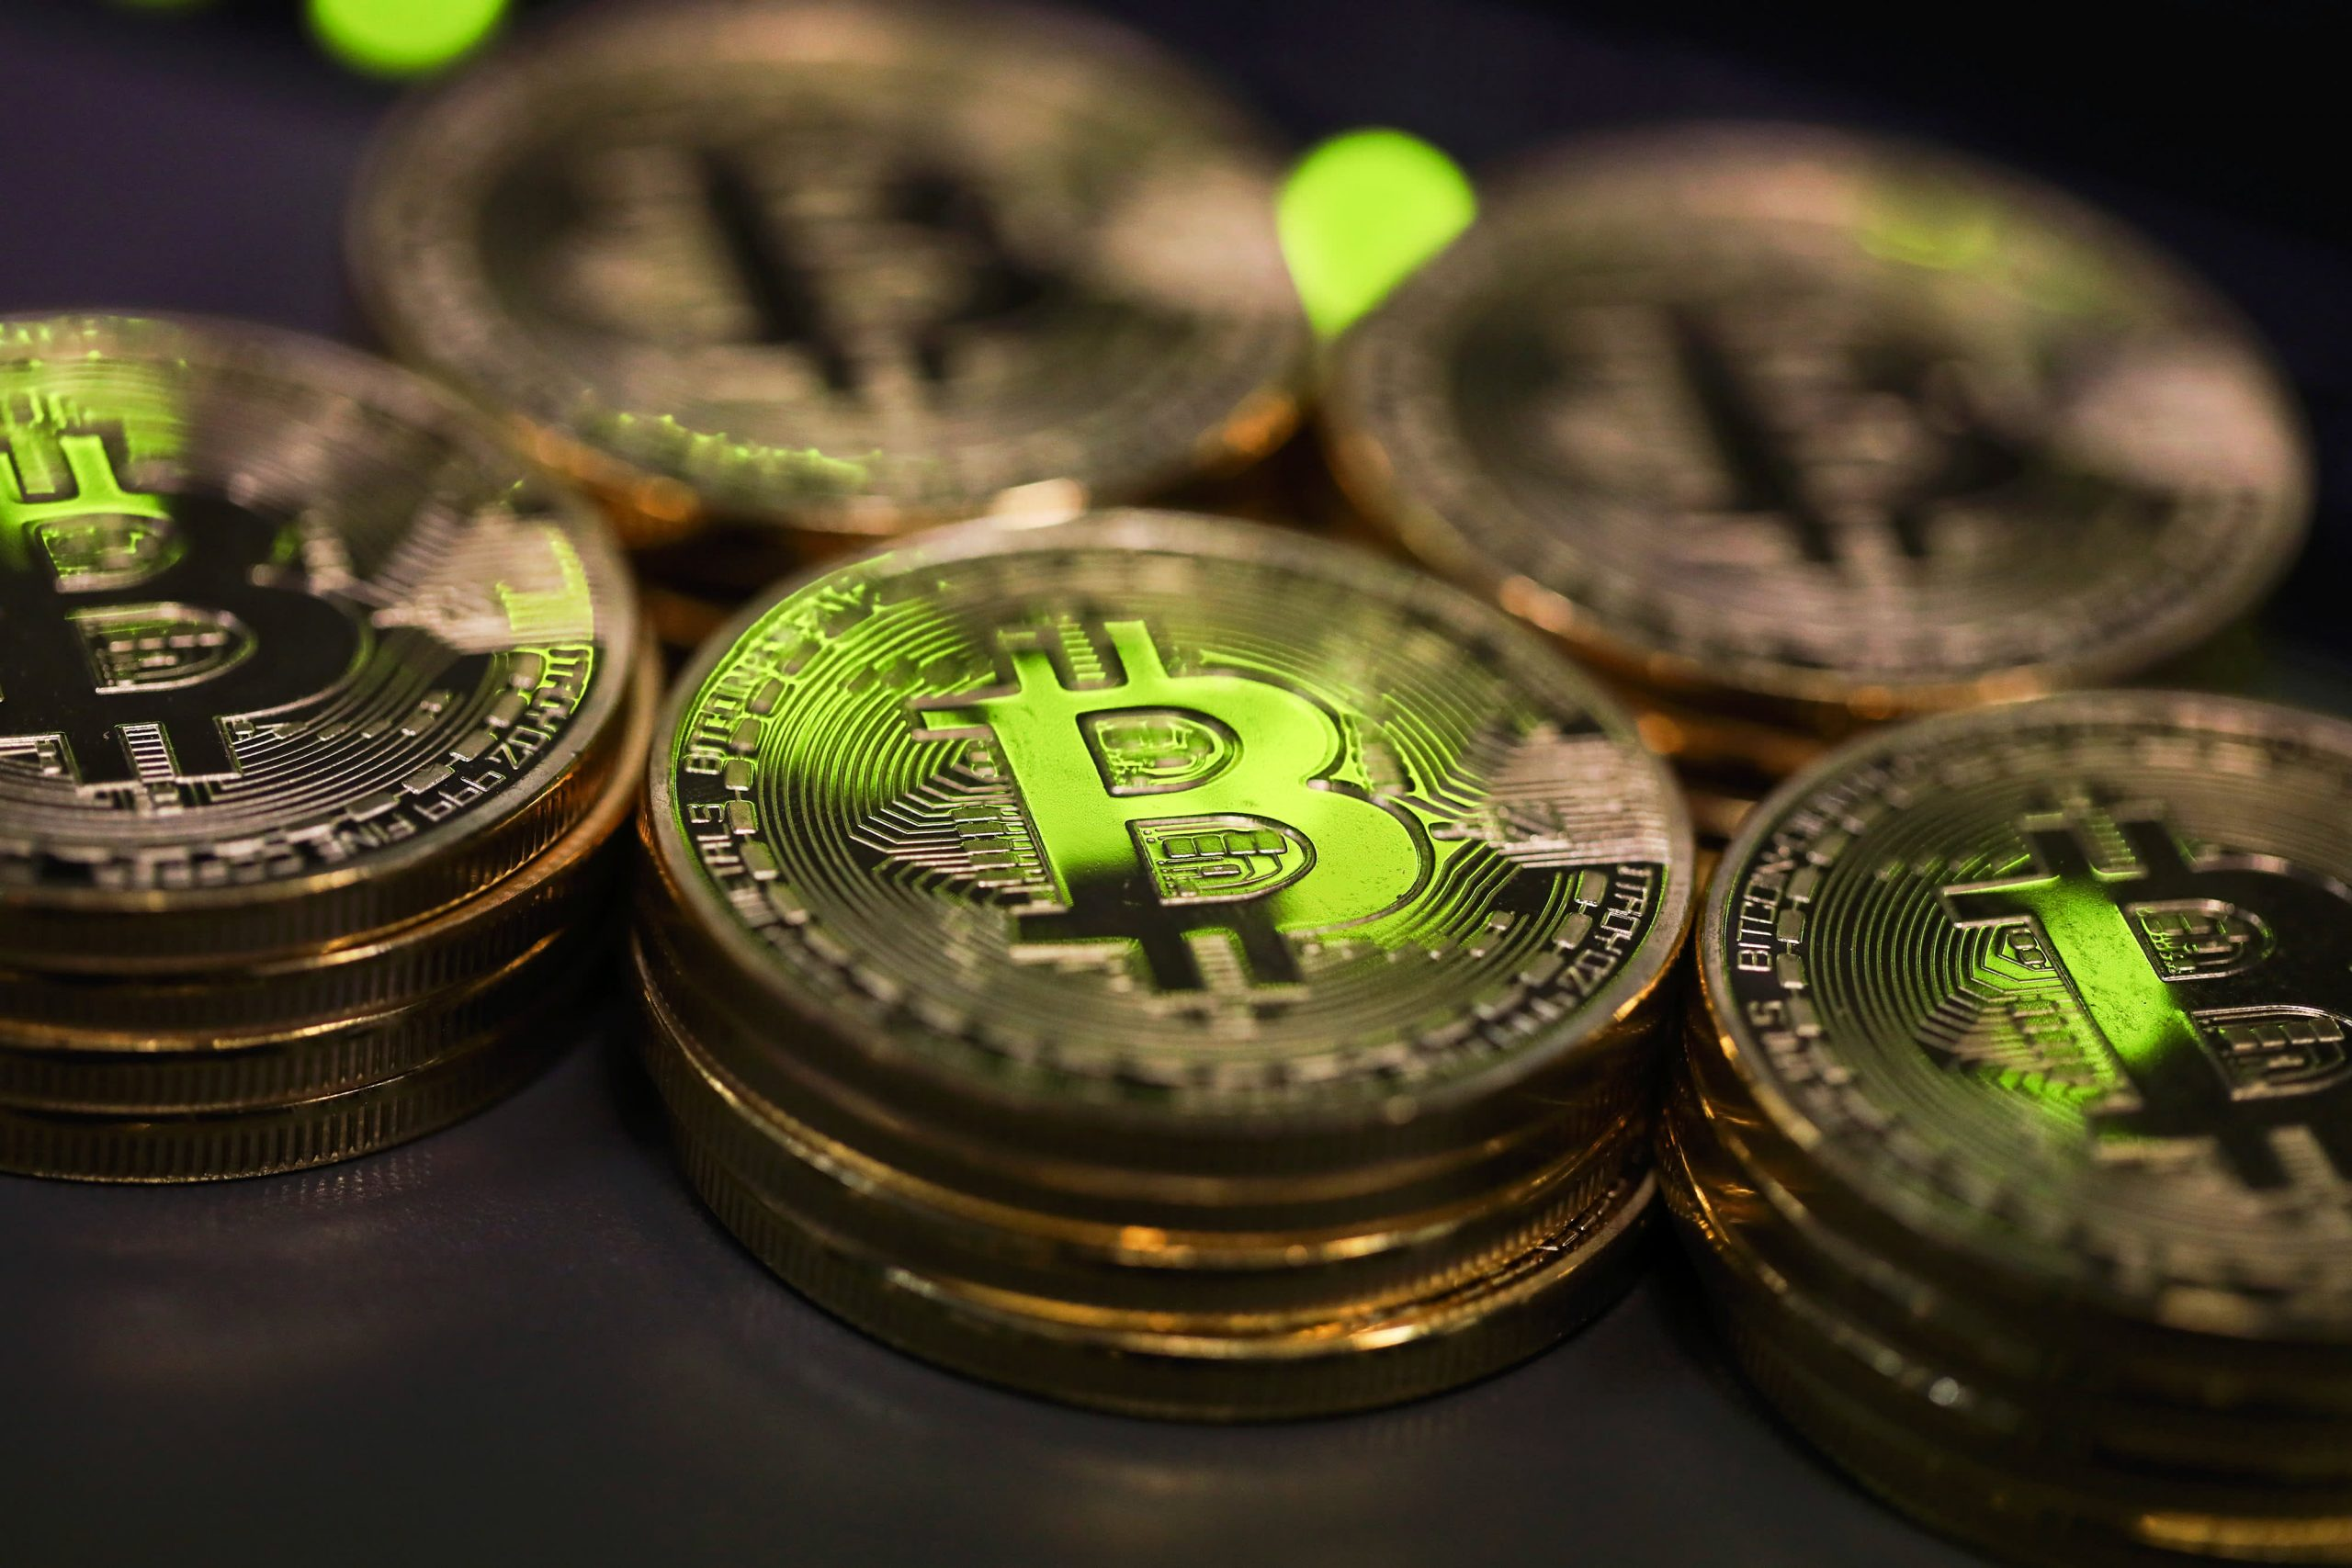 Bitcoin had a wildly volatile first half. Here are 5 of the biggest risks ahead